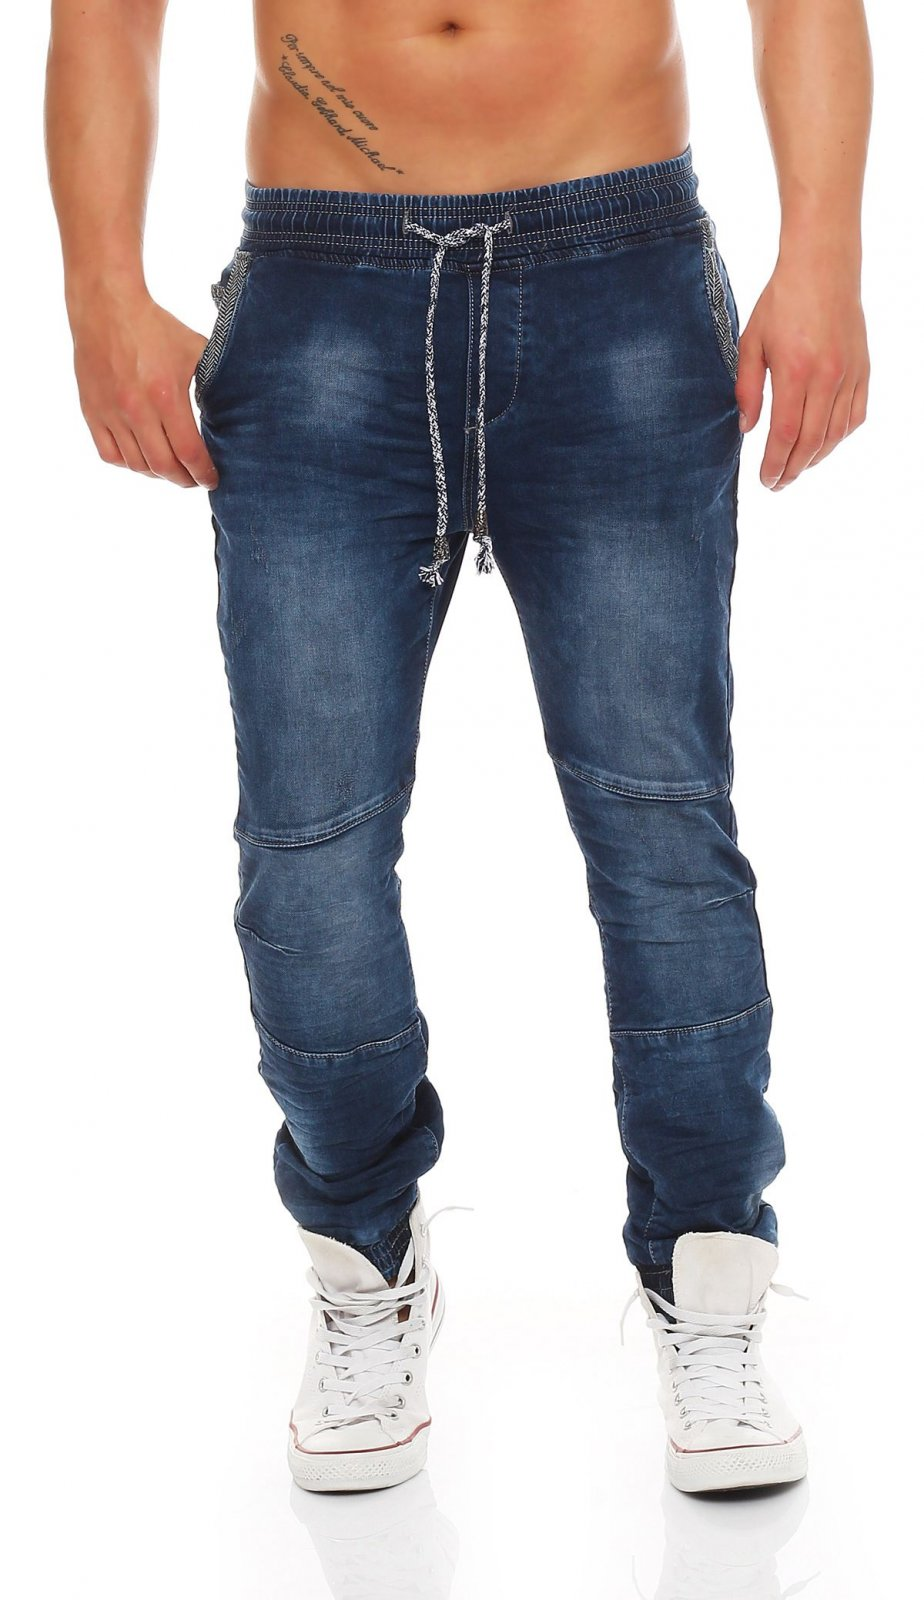 Herren - Sweathose Jogginghose Joggjeans Chino Denim